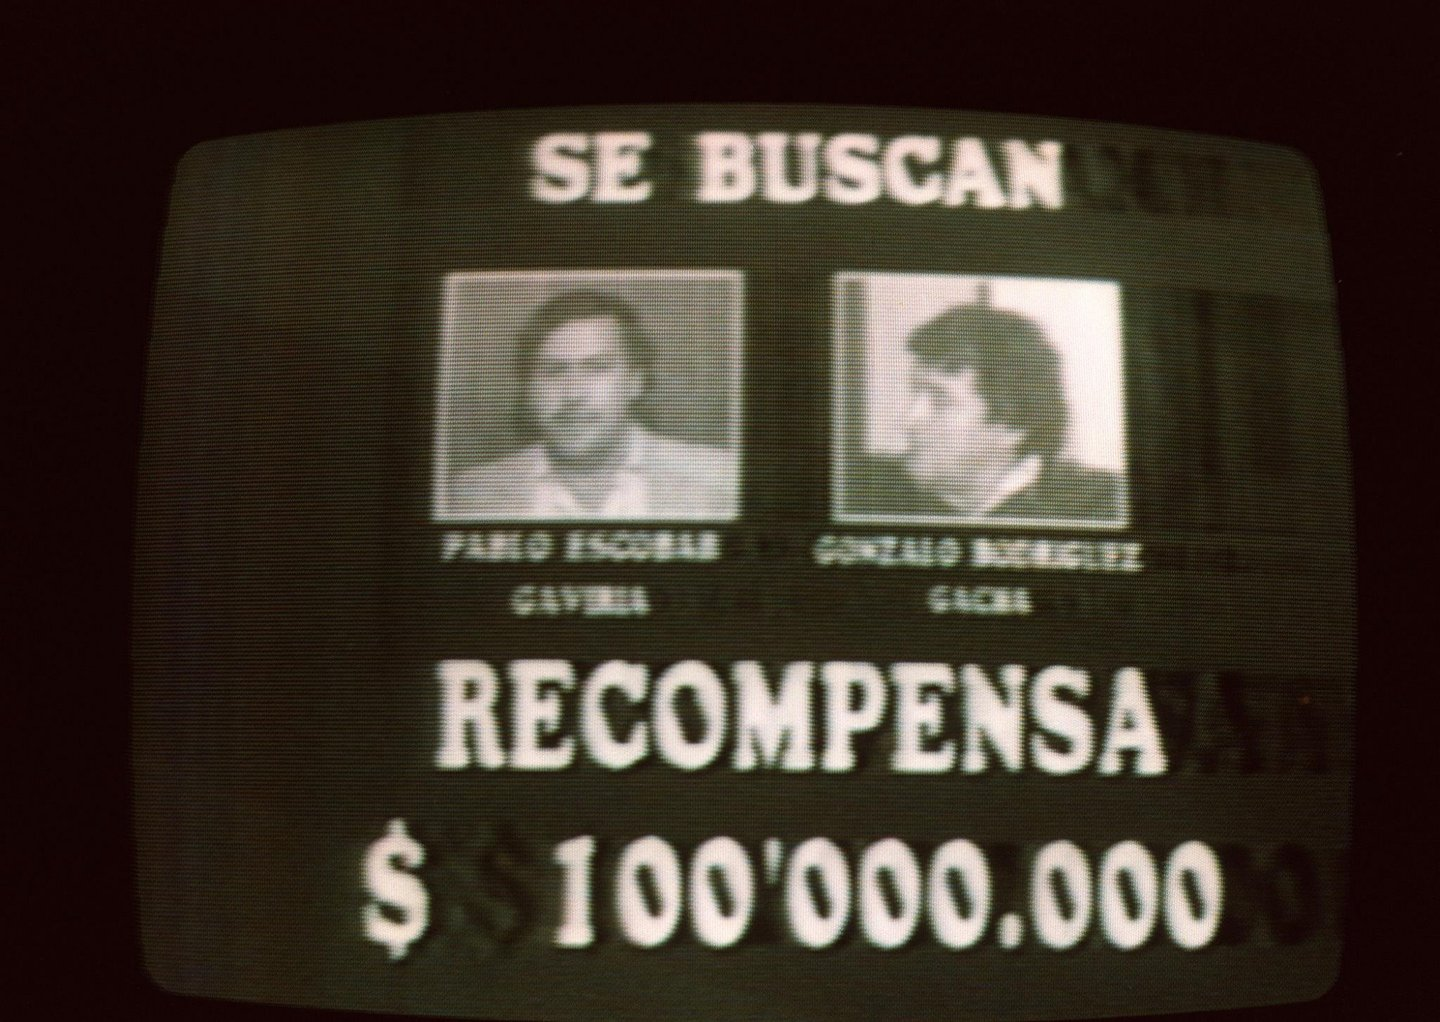 BOGOTA, COLOMBIA - SEPTEMBER 6:  An image taken 06 September 1989 from Colombian television of a wanted advertisement for Medellin drug cartel leaders Pablo Escobar and Gonzalo Rodriguez.  (Photo credit should read CARLOS LEMA/AFP/Getty Images)